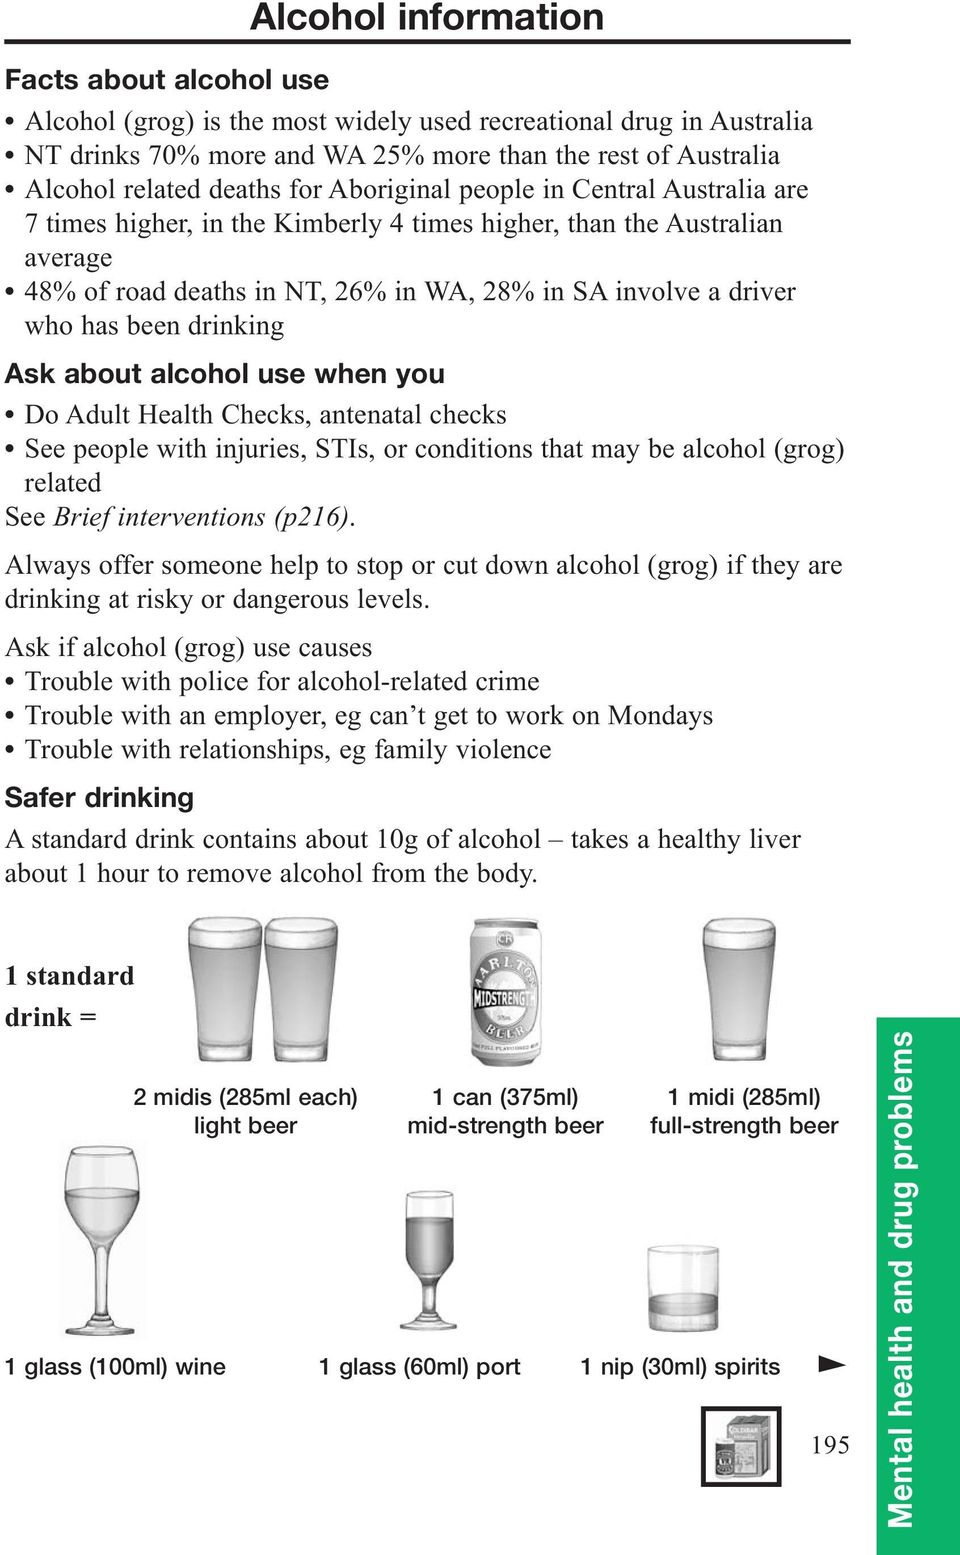 drinking Ask about alcohol use when you Do Adult Health Checks, antenatal checks See people with injuries, STIs, or conditions that may be alcohol (grog) related See Brief interventions (p216).